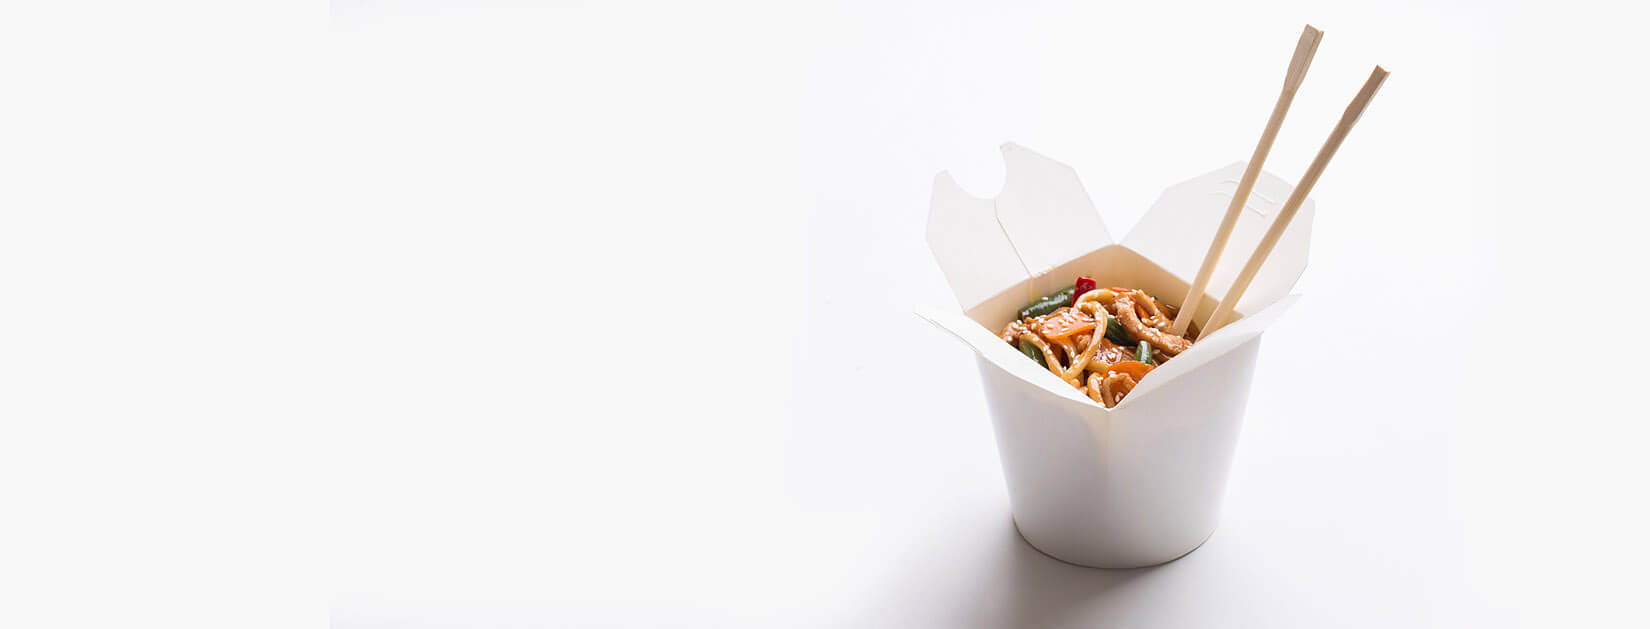 chinese food in a take out container with chopsticks during Covid-19